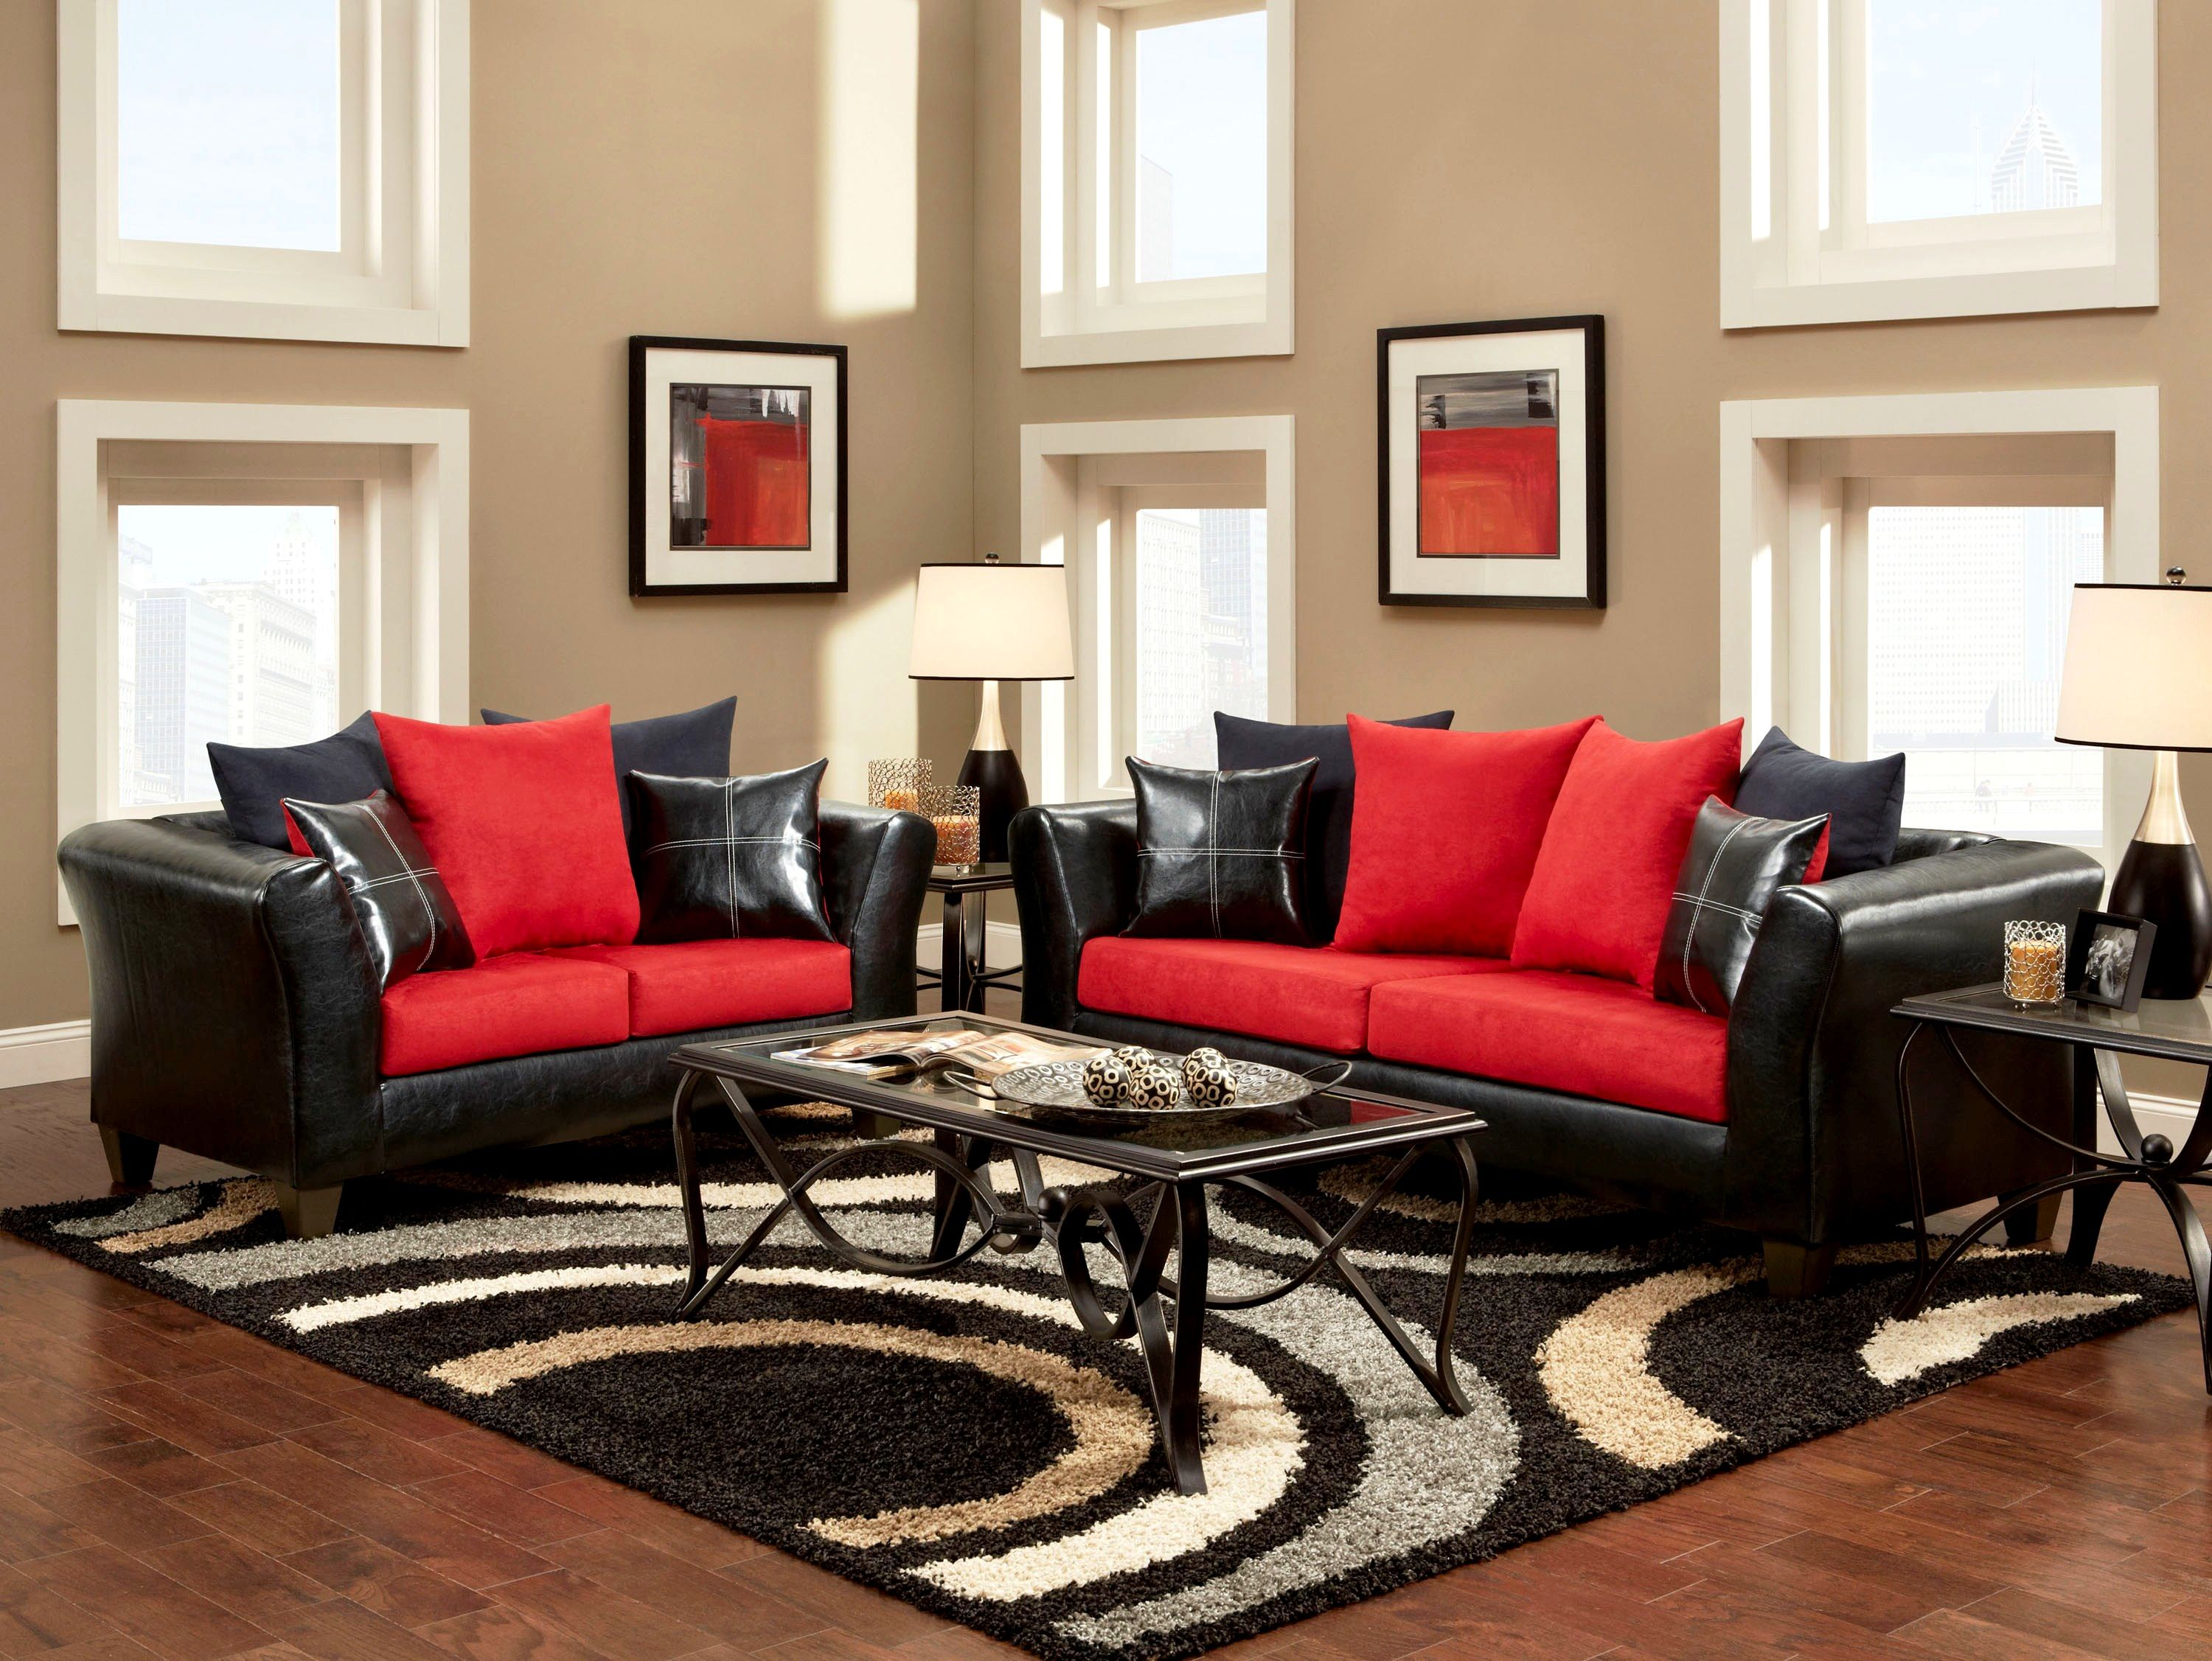 Living room pattern chairs - Living Room Comely Black And Red Living Room Pattern Rug Pillow White Curtains In The